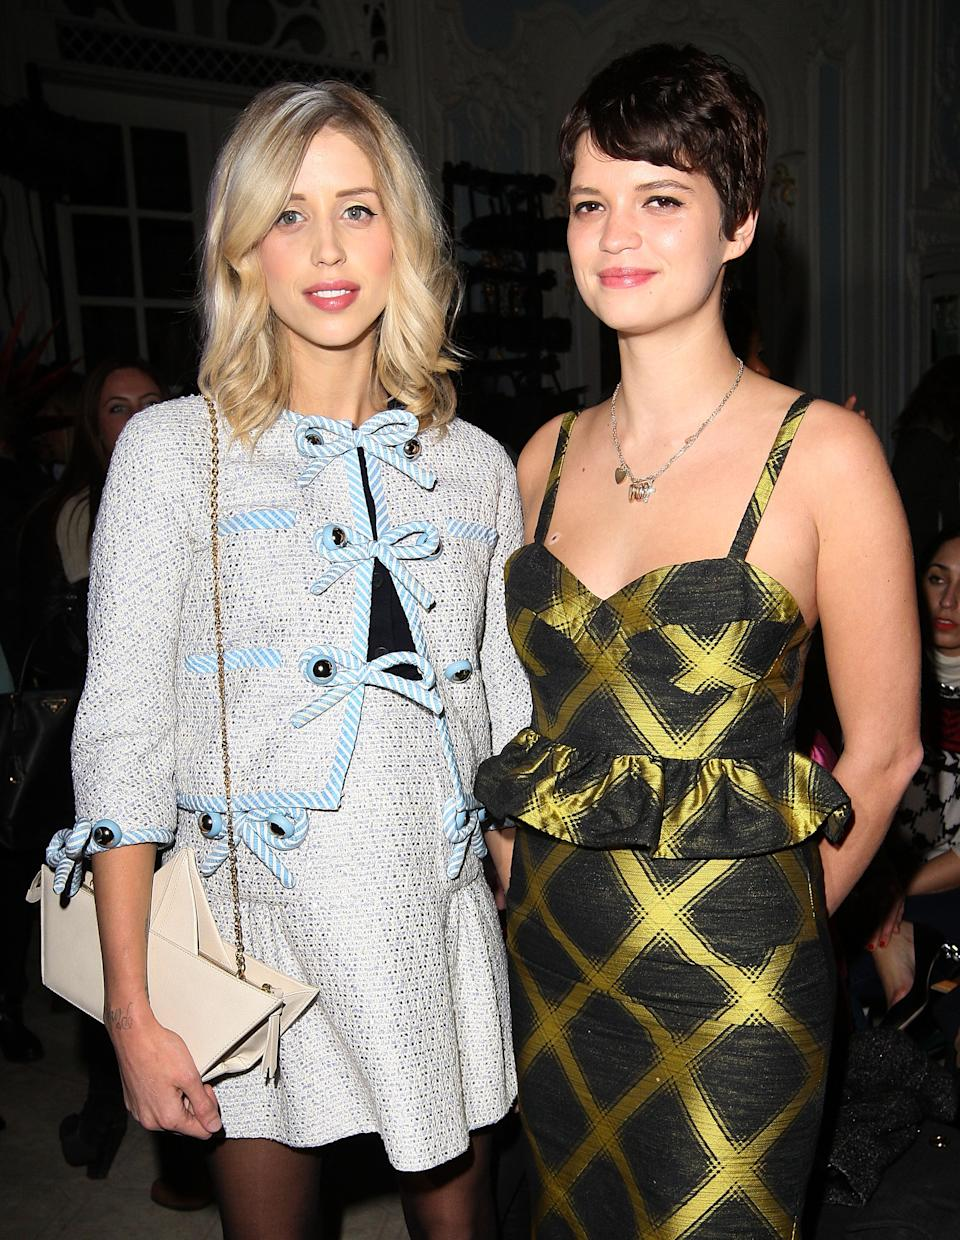 LONDON, ENGLAND - FEBRUARY 16:  Peaches Geldof and Pixie Geldof (R) attend the Moschino cheap&chic show during London Fashion Week Fall/Winter 2013/14 at The Savoy Hotel on February 16, 2013 in London, England.  (Photo by Danny Martindale/WireImage)